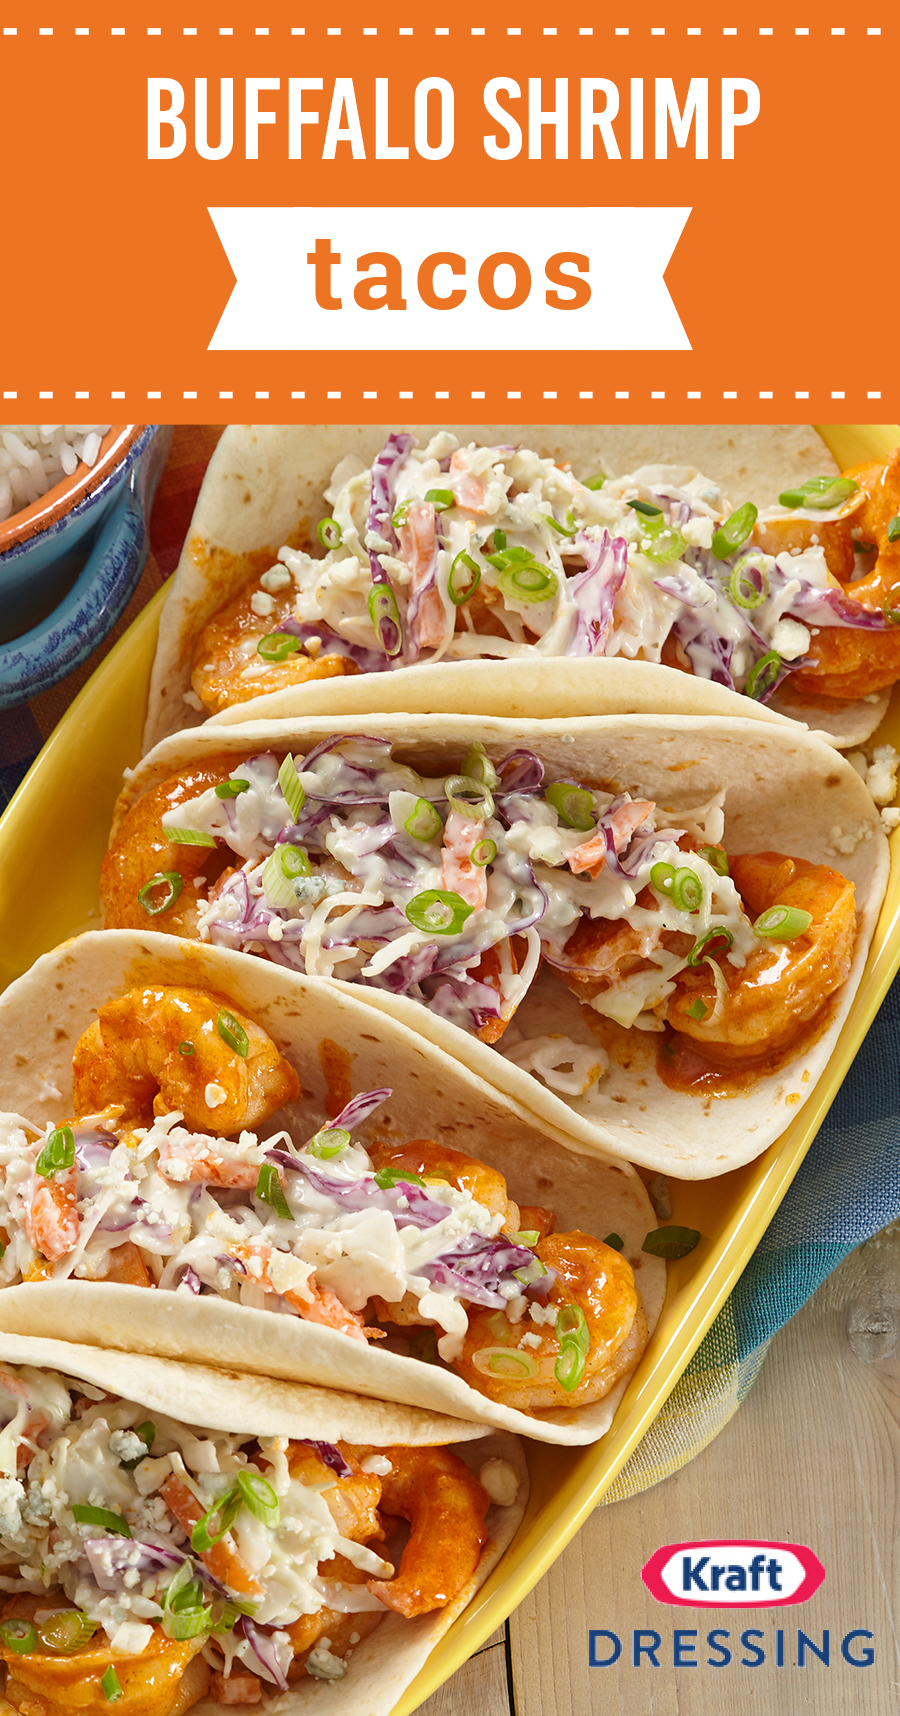 Buffalo Shrimp Tacos – Made with shrimp, blue cheese, and coleslaw, these spicy taco bites are sure to bring the party to your next fiesta. Ready in just 20 minutes, this flavorful recipe comes together in no time. #buffaloshrimp